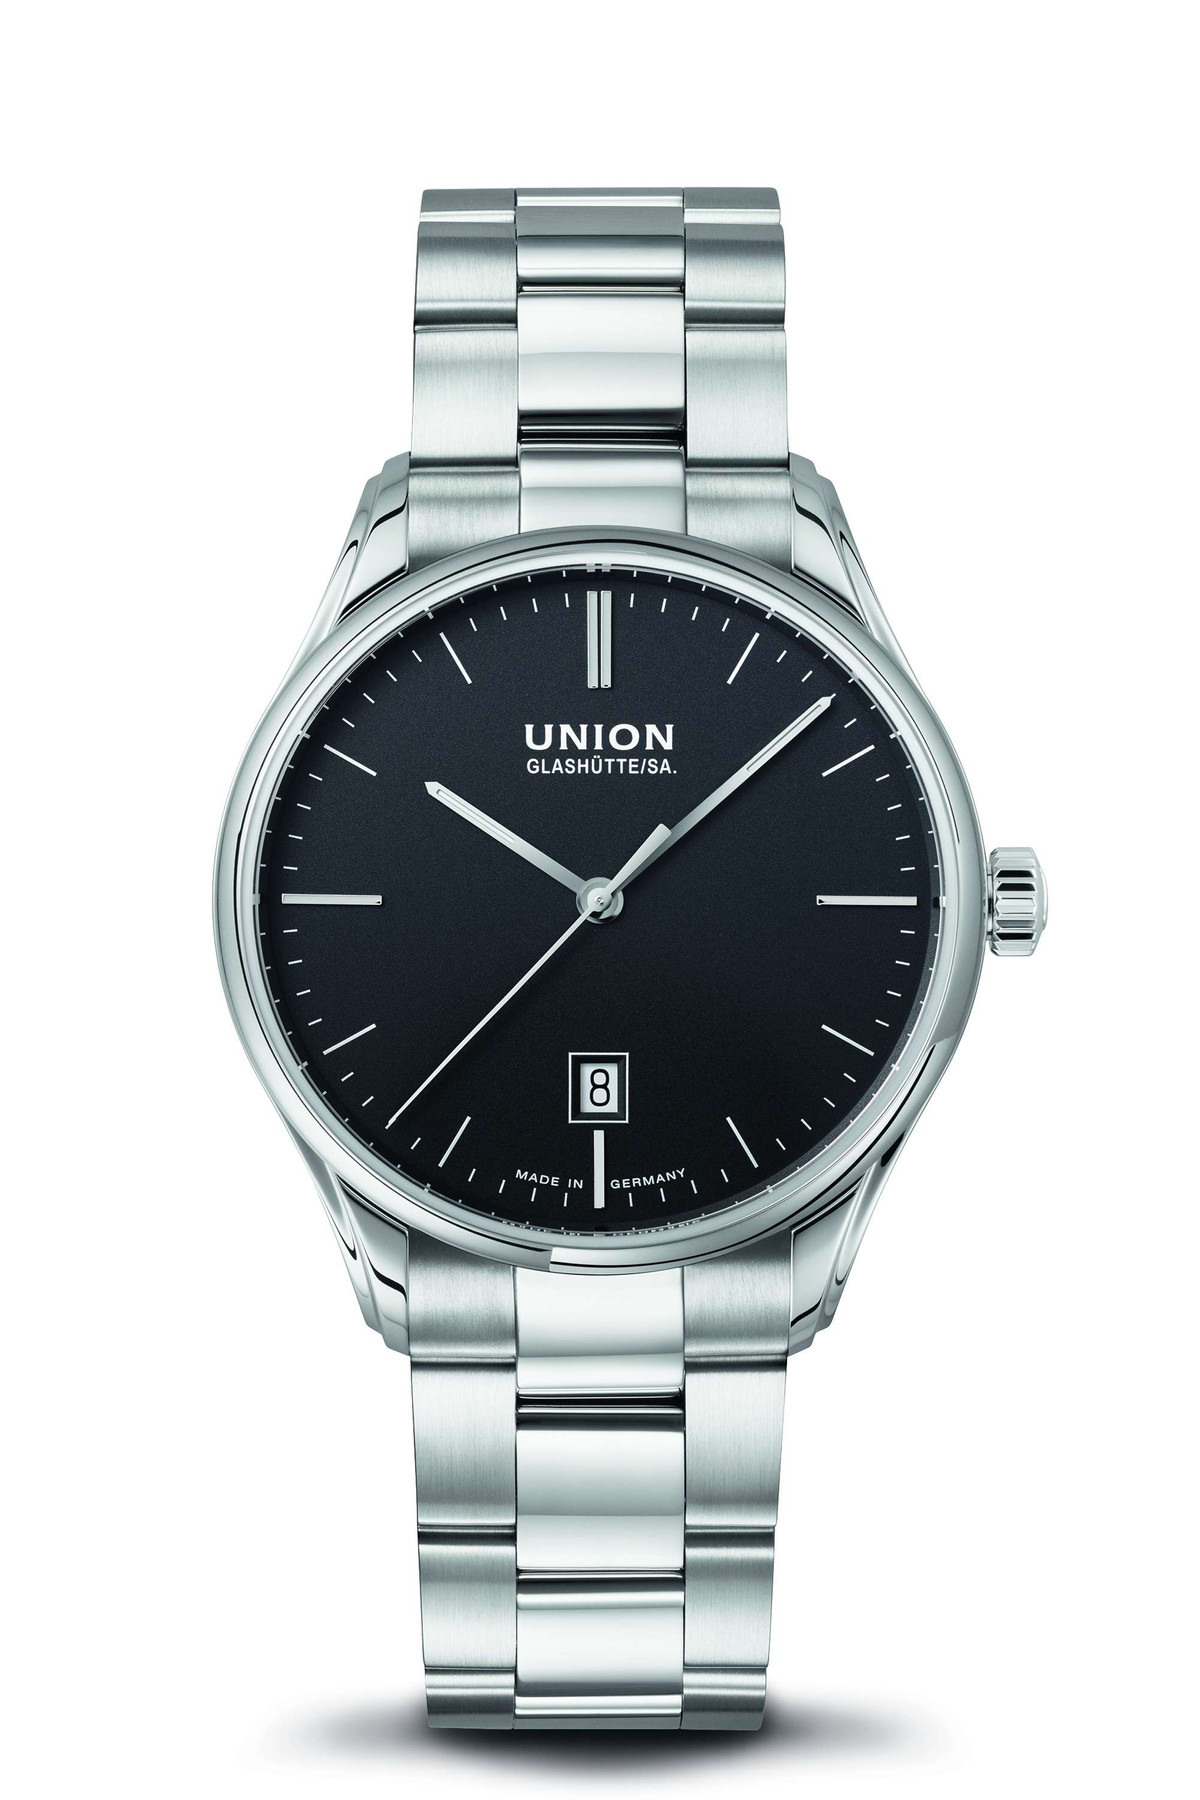 Union Glashütte Viro Datum 41 mm D011.407.11.051.00